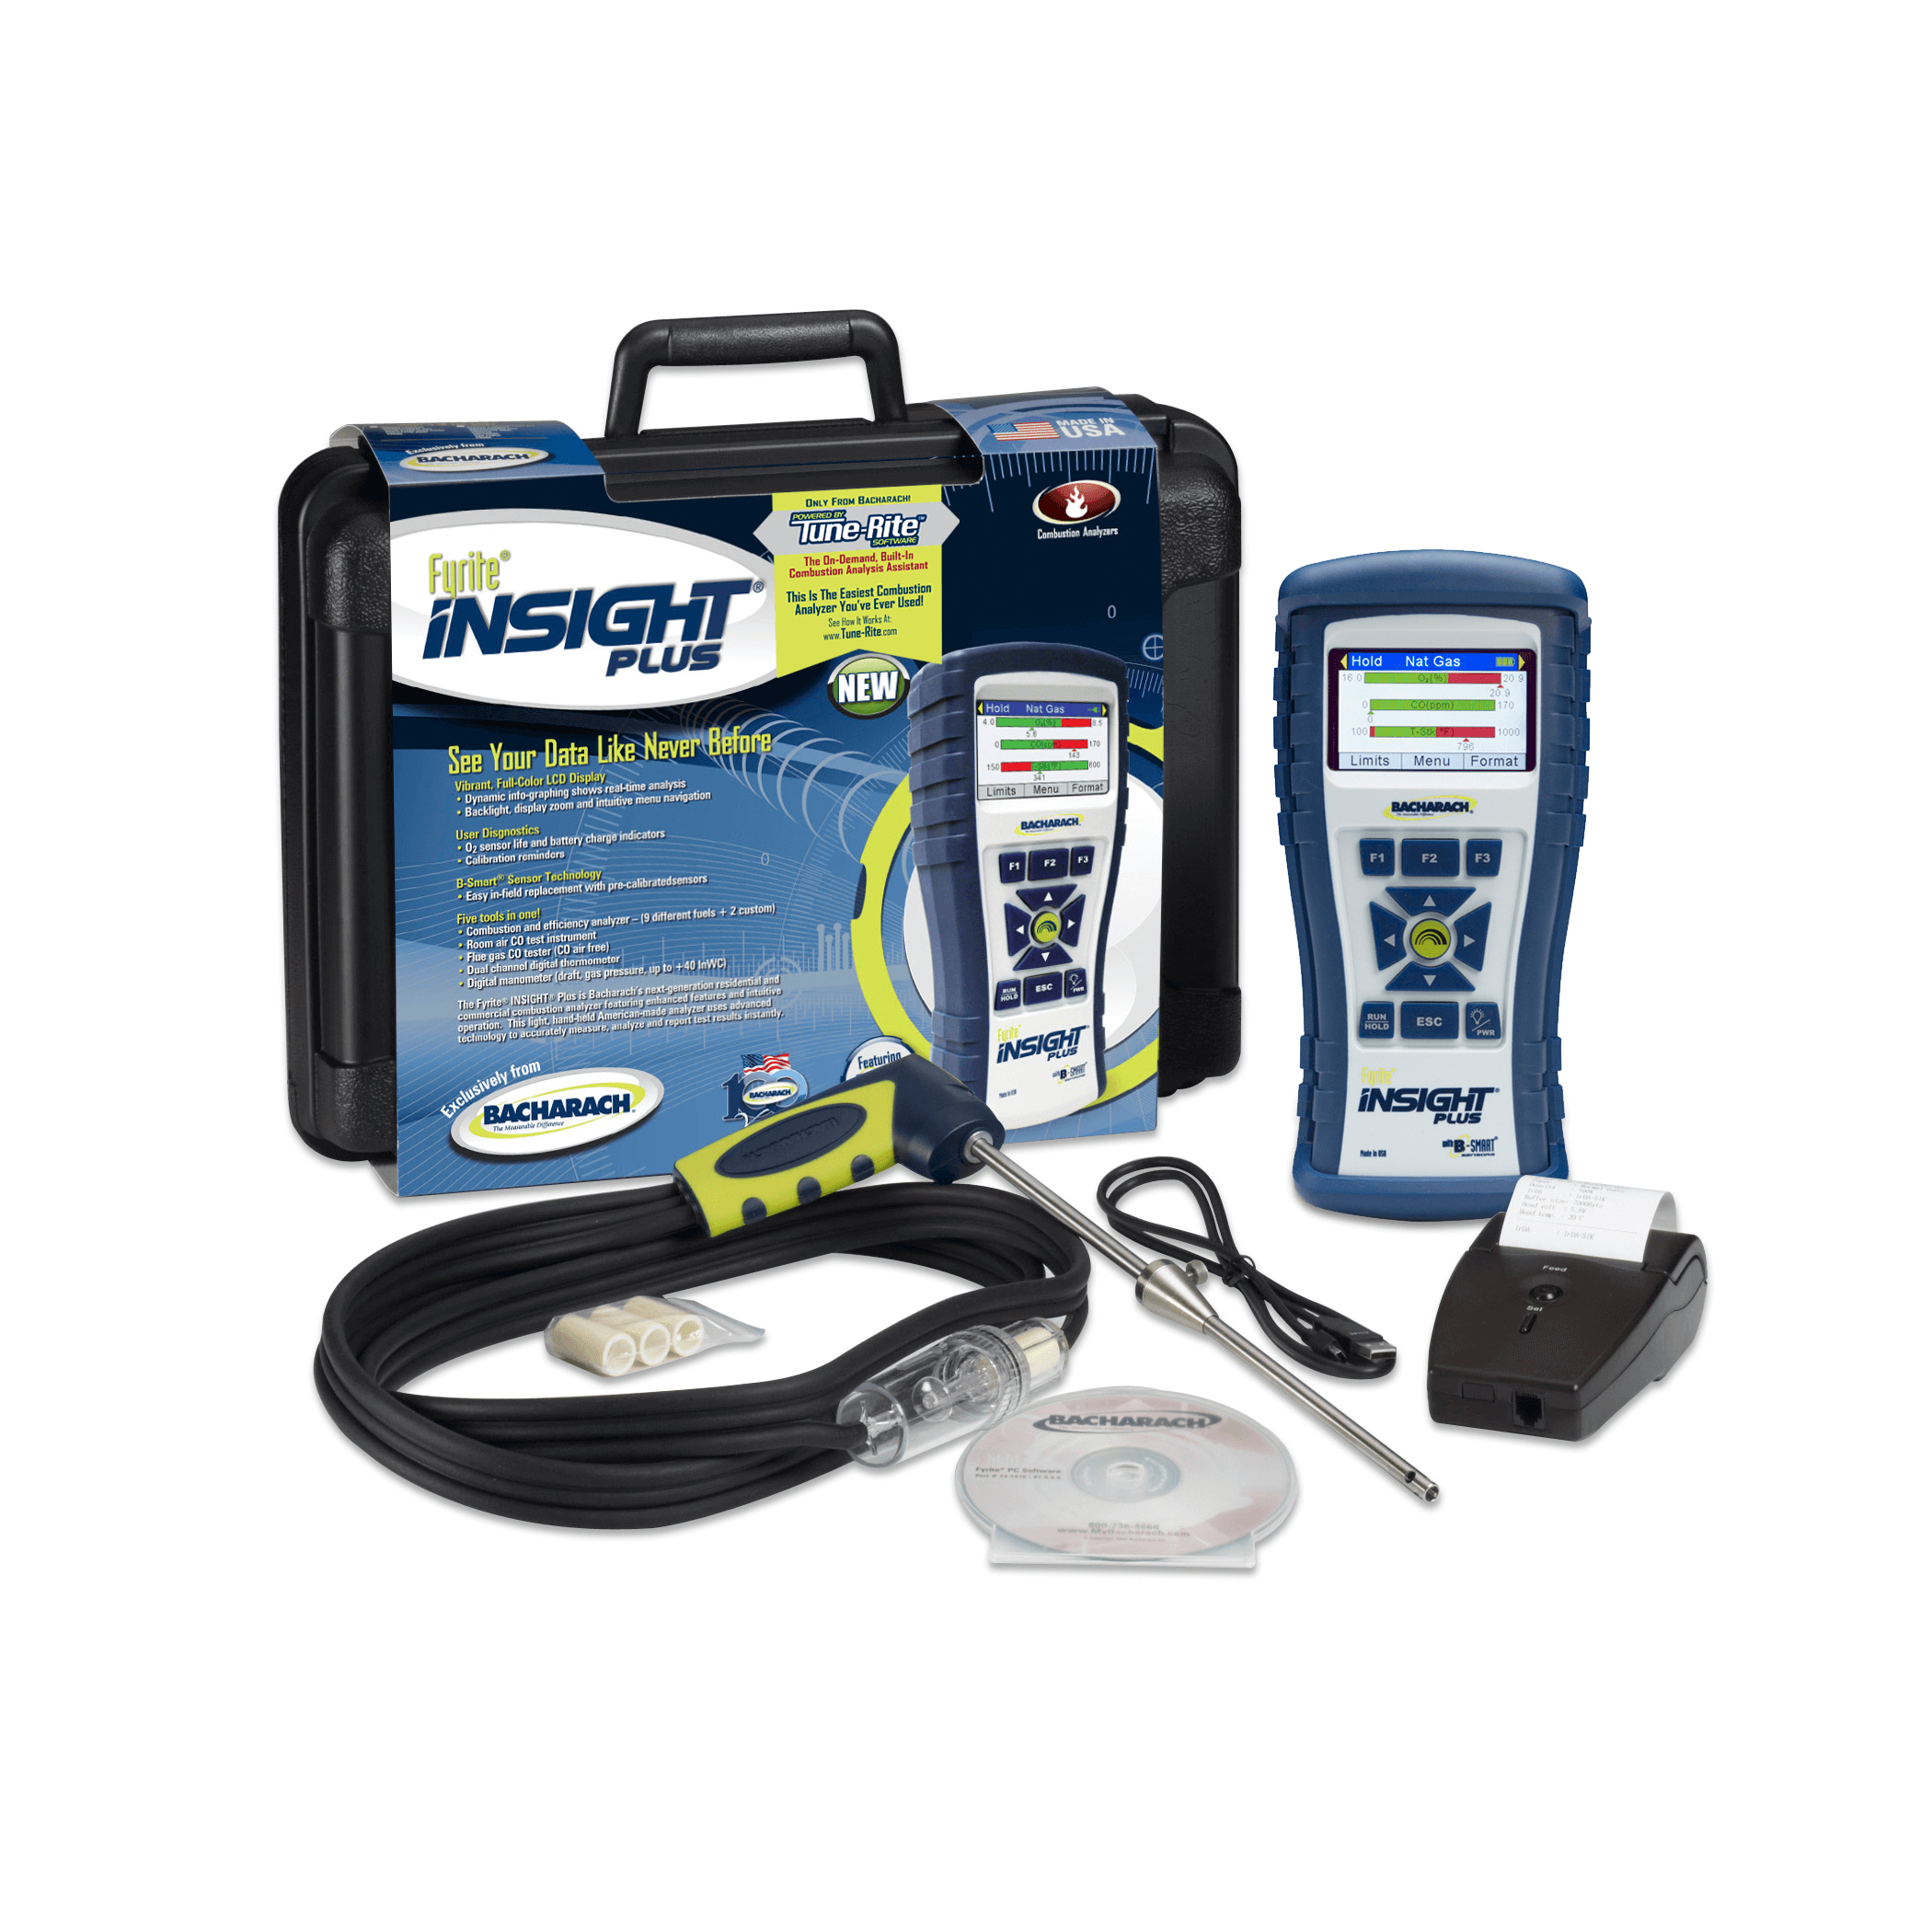 Bacharach 24-8518 Fyrite Insight Plus Combustion Analyzer Reporting Kit LL [Free 2nd Day Shipping]